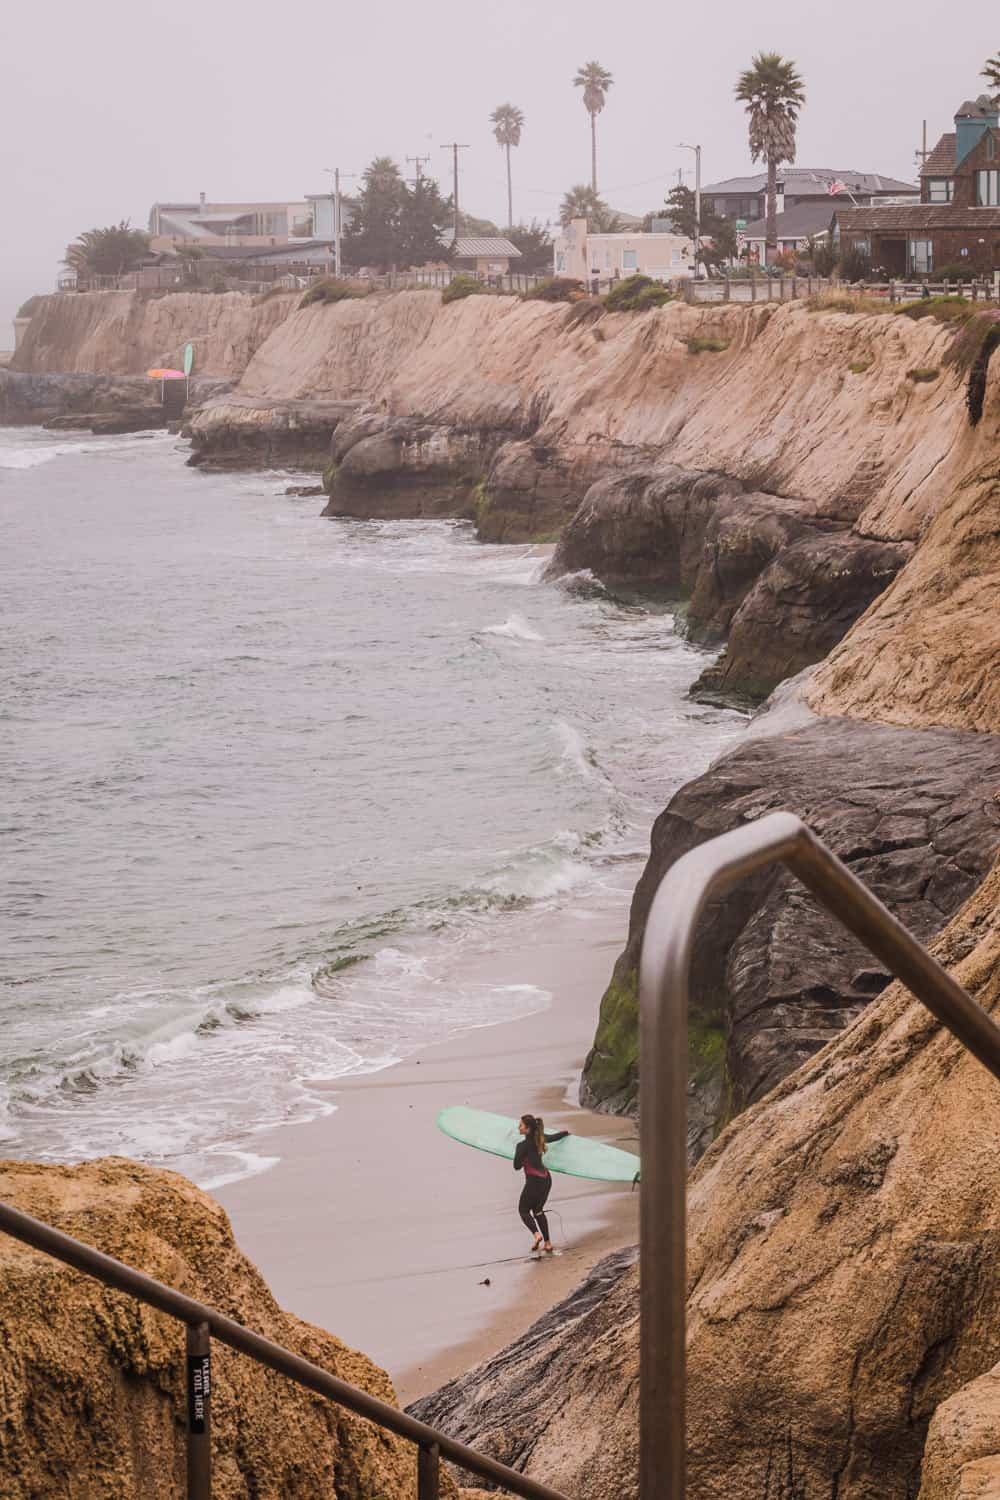 A view of Pleasure Point, where the cliffs meat the ocean, and a surfer about to paddle out